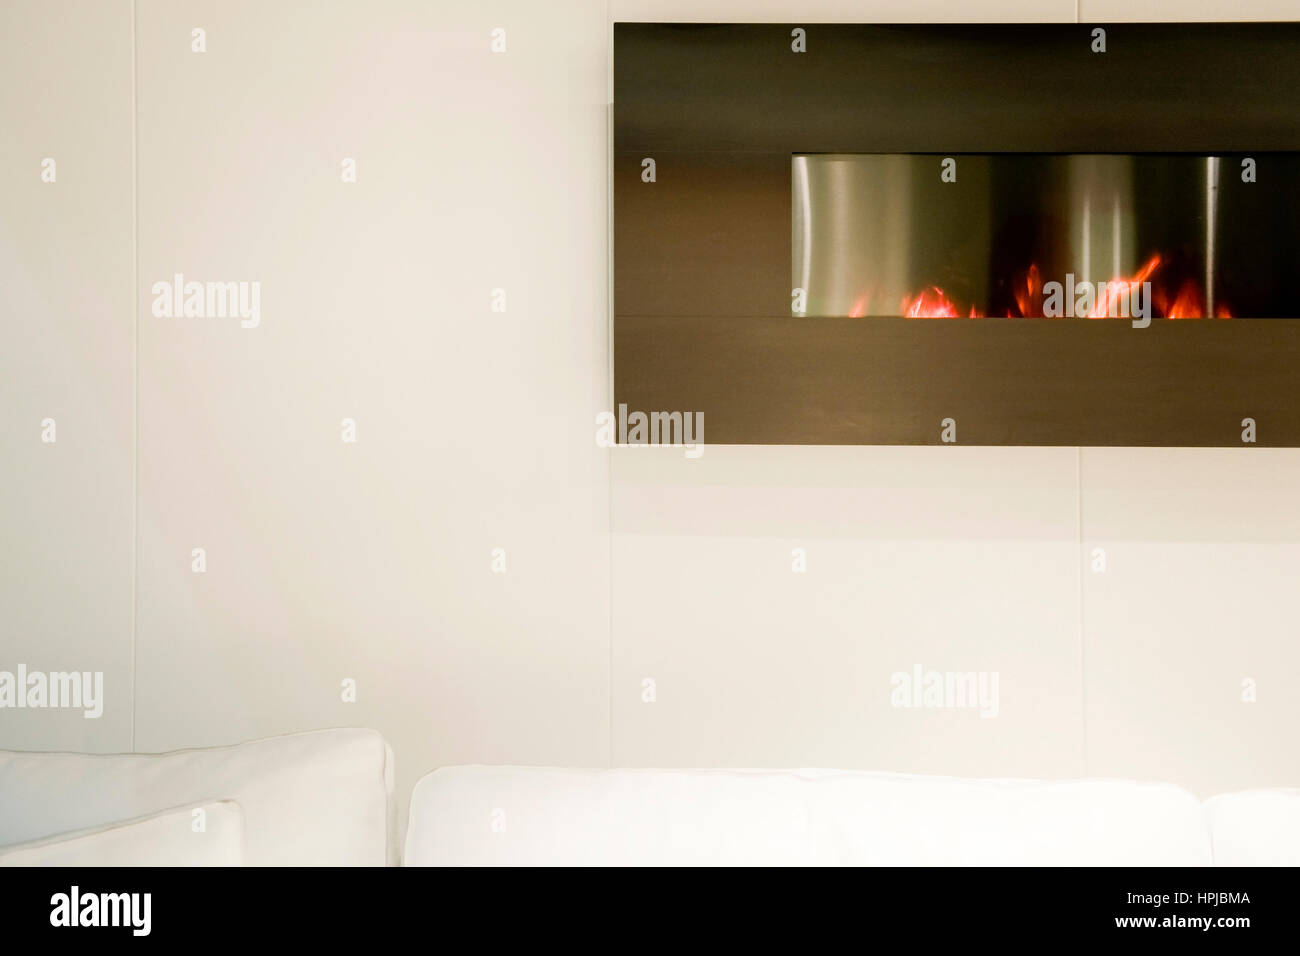 Kaminofen Qualm Im Zimmer Kamine Stock Photos Kamine Stock Images Alamy